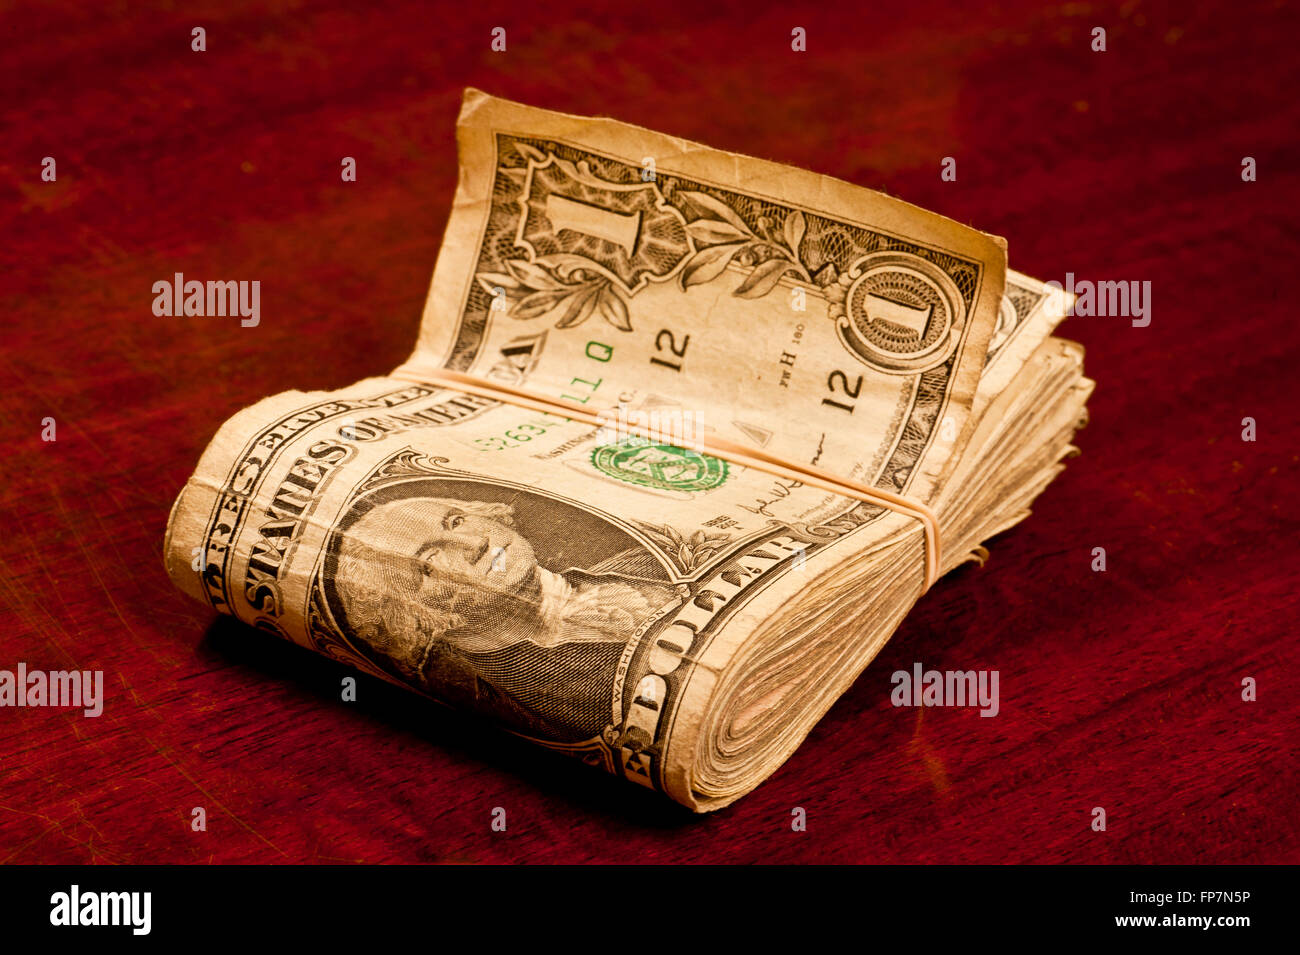 Very Worn Dollar Bills With Rubber Band - Stock Image